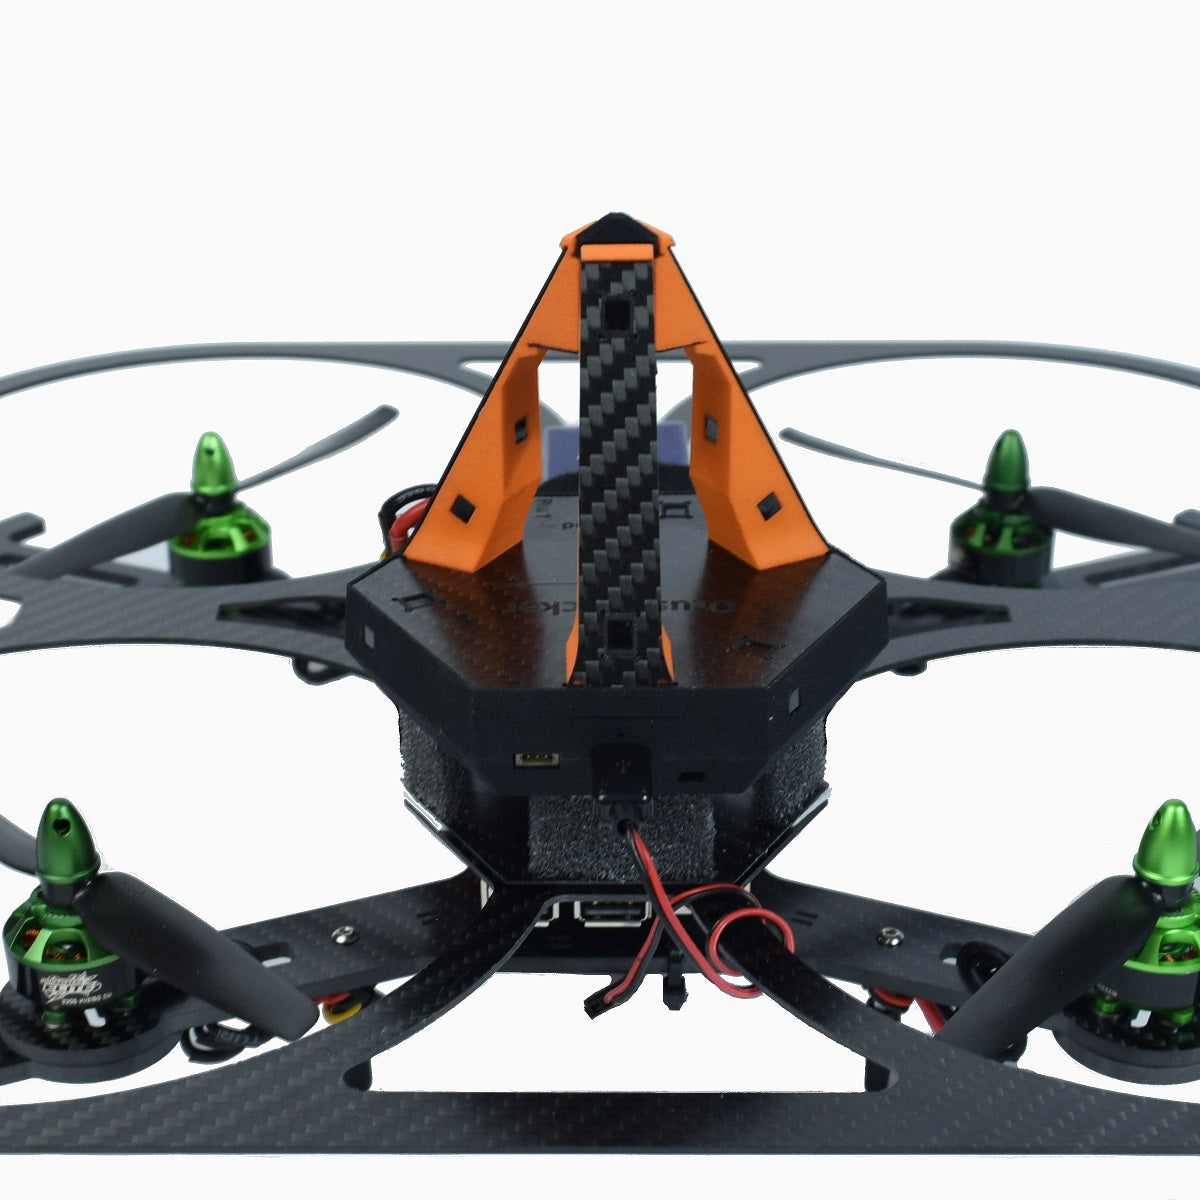 Close up of Otus tracker on quadcopter